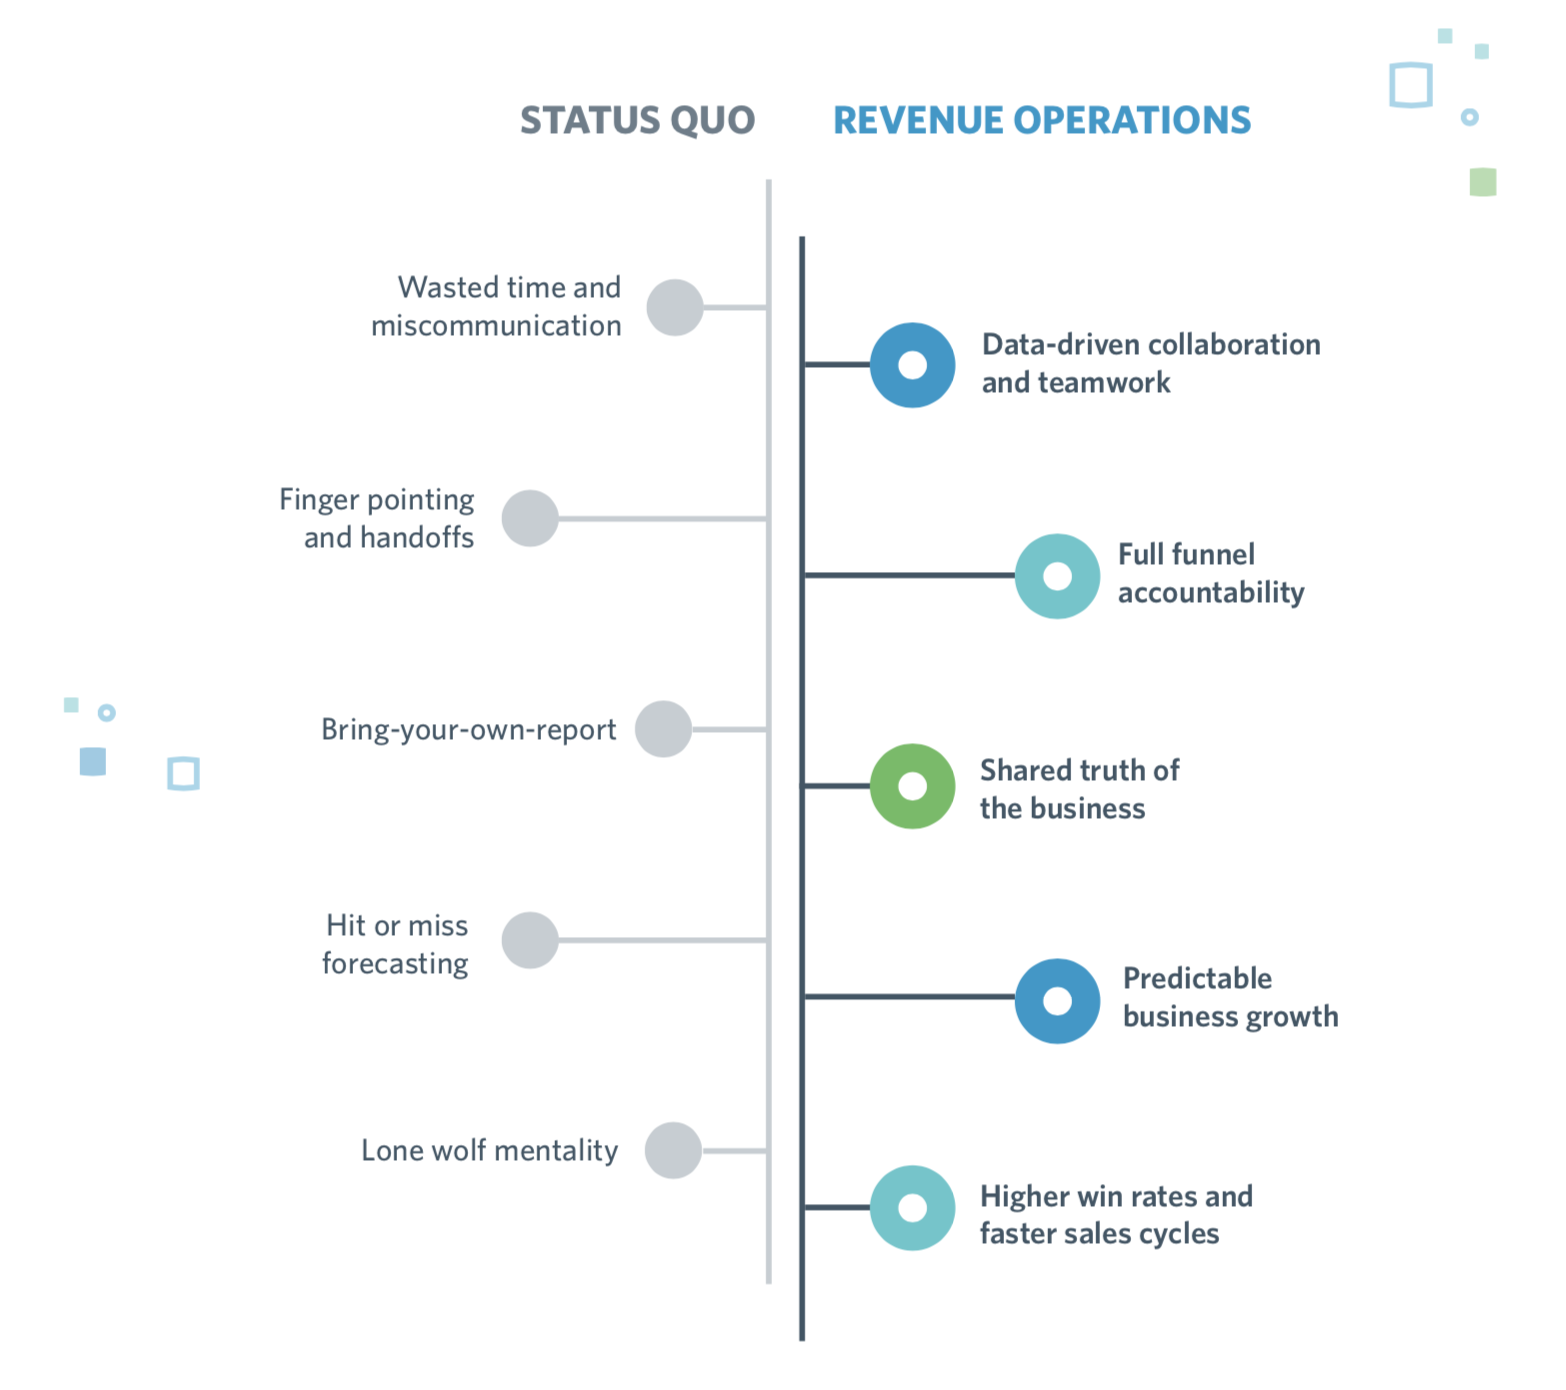 Image showing the advantages of a RevOps model compared to status quo sales models